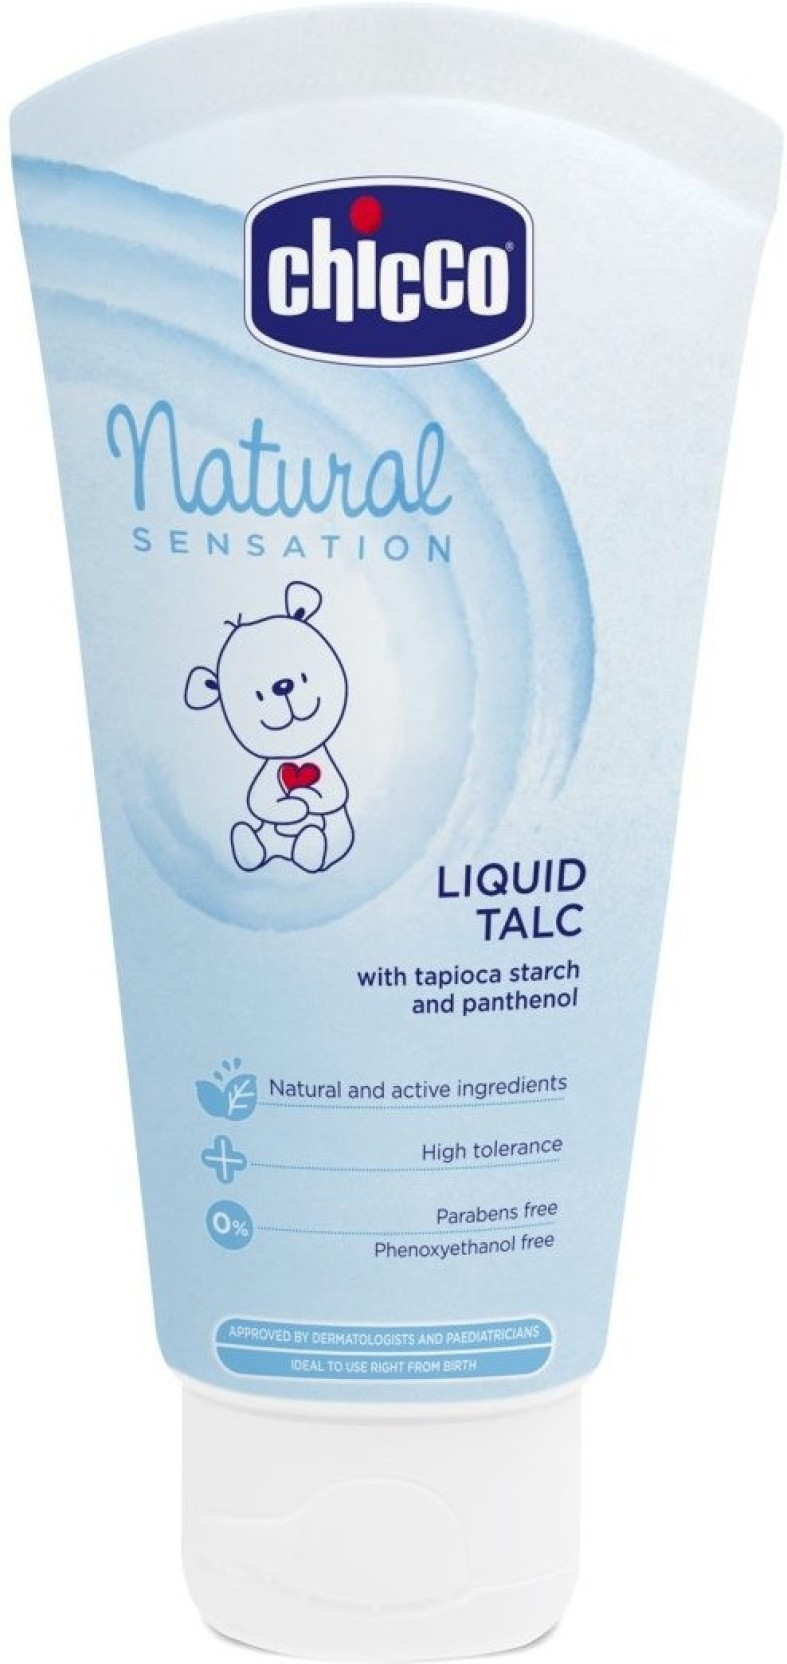 Chicco Natural Sensation Liquid Talc Blue 100ml Price In Baby Moments Nappy Cream Add To Cart